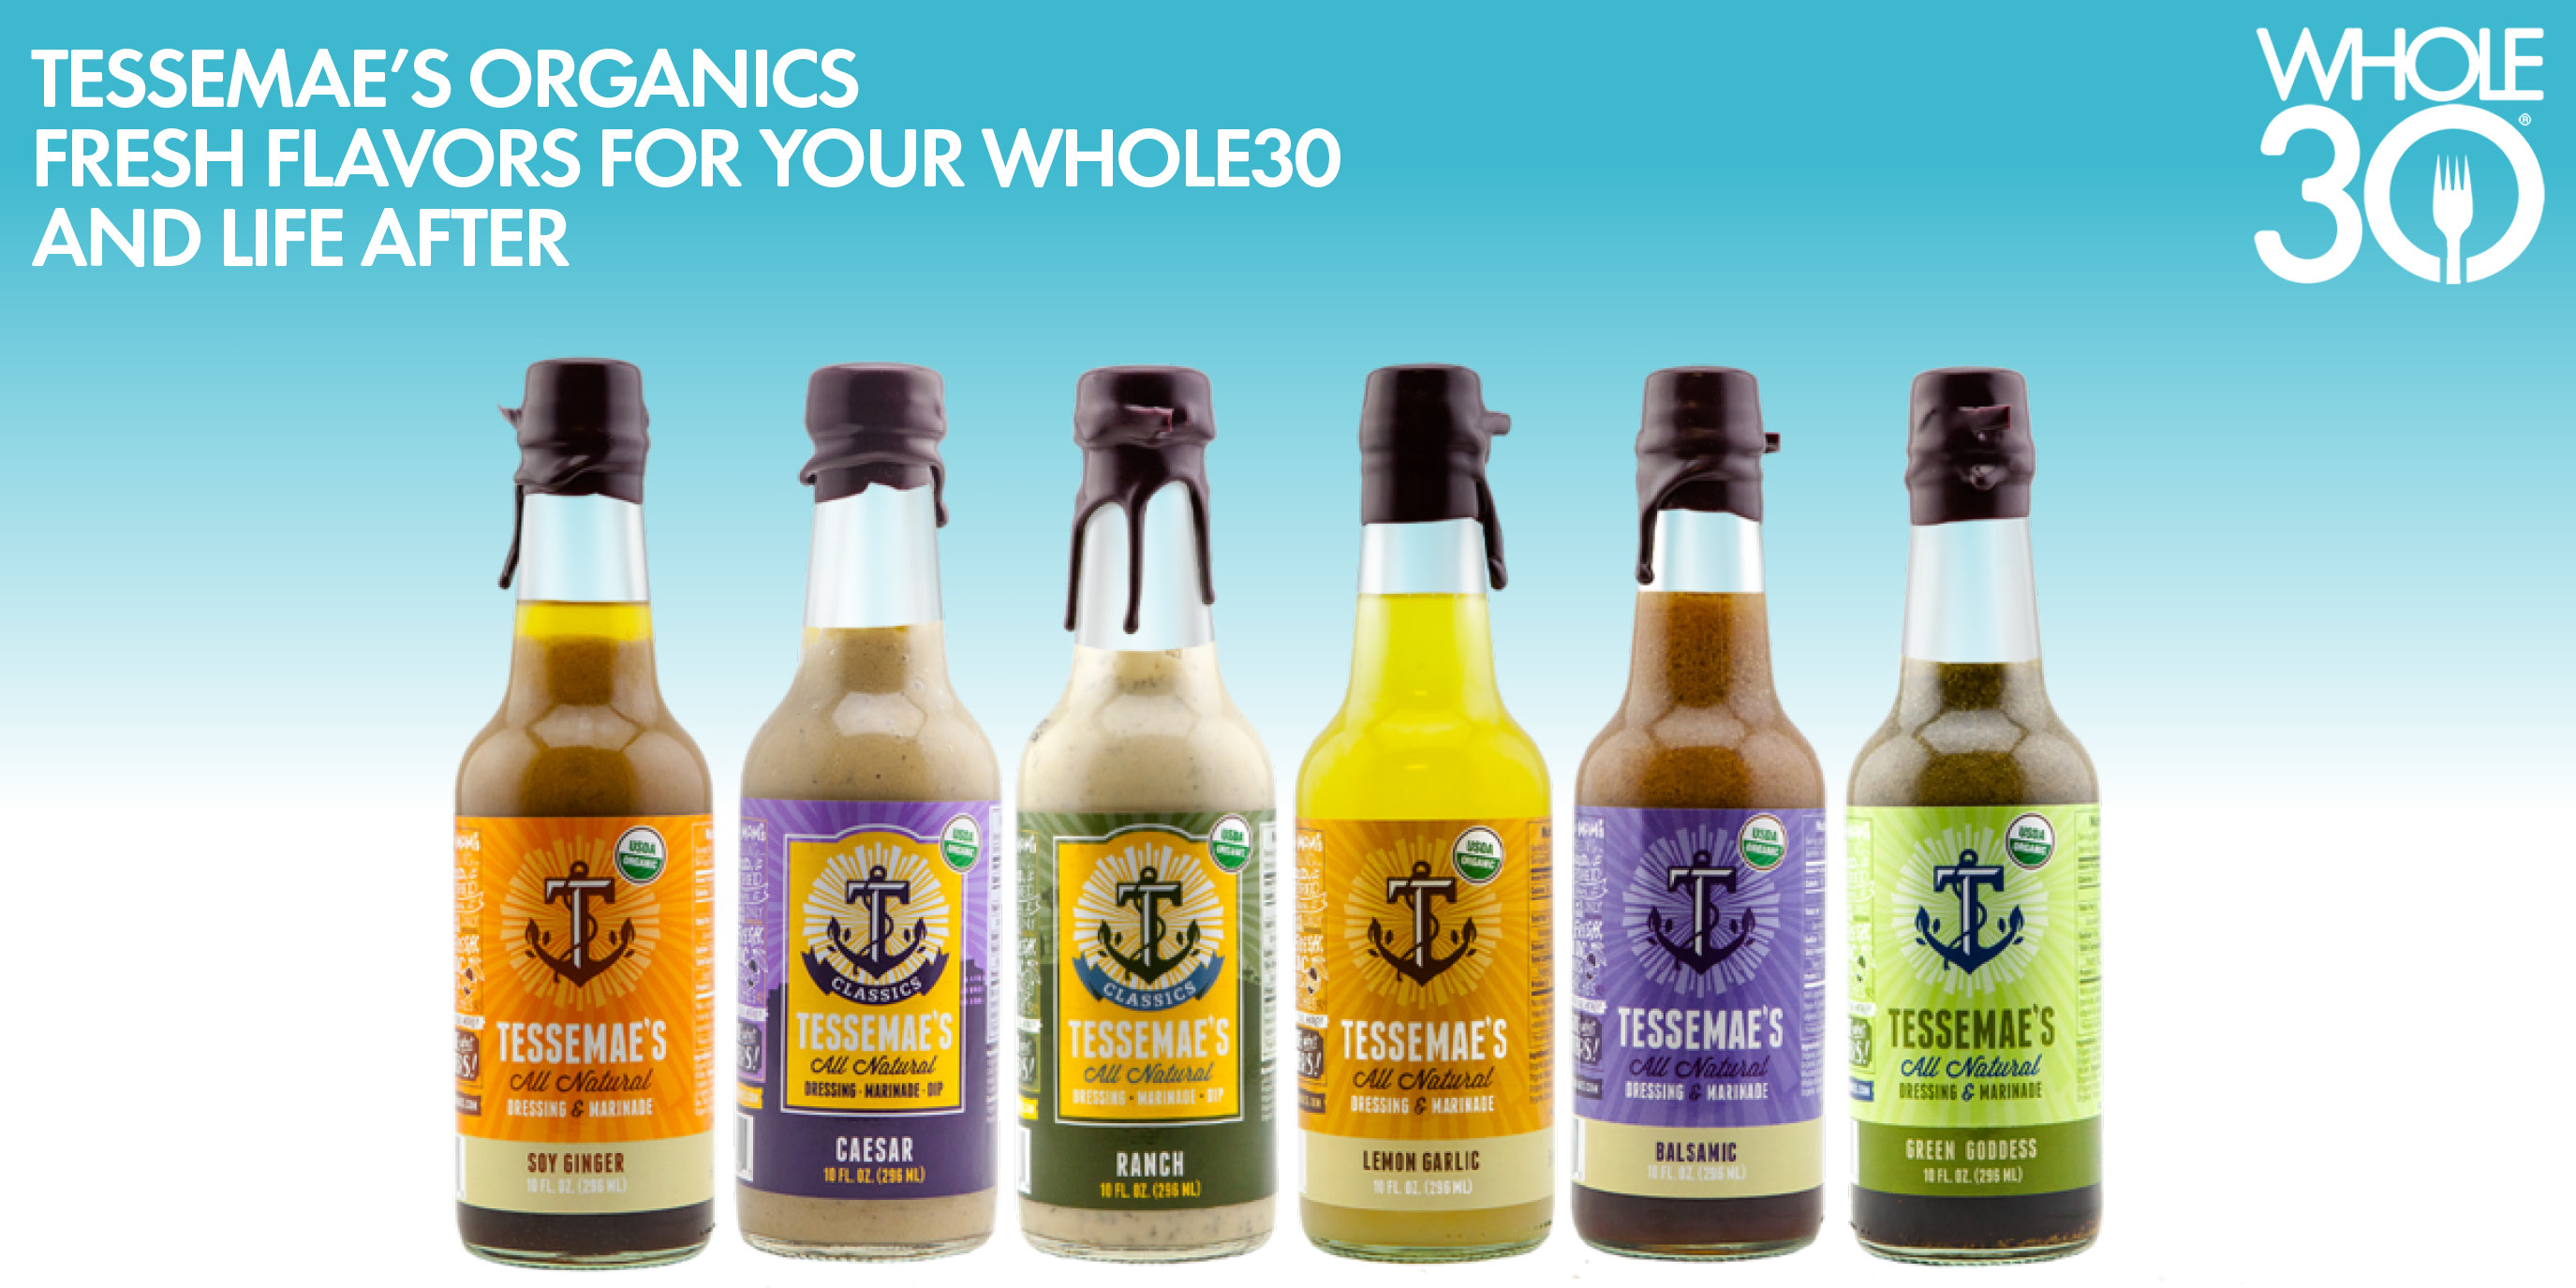 Going Organic A Whole30 Q&a With Tessemae's  The Whole30